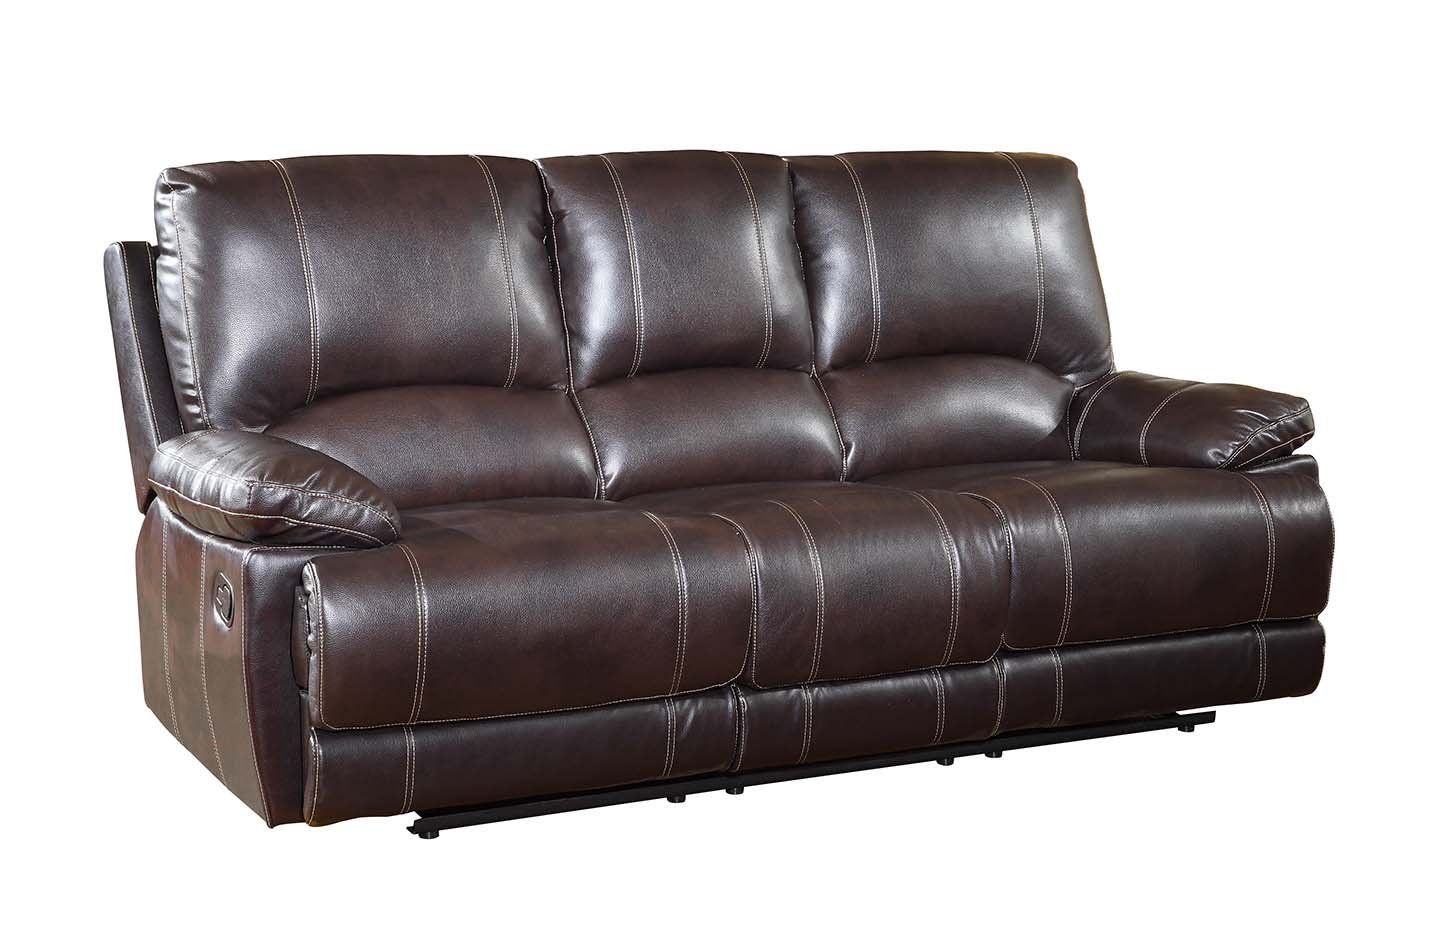 Blackjack Furniture 9345-BROWN-2PC-CON The Brantley Collection 2-Piece Reclining Living Room Leather Sofa Set W/Console Loveseat, Brown